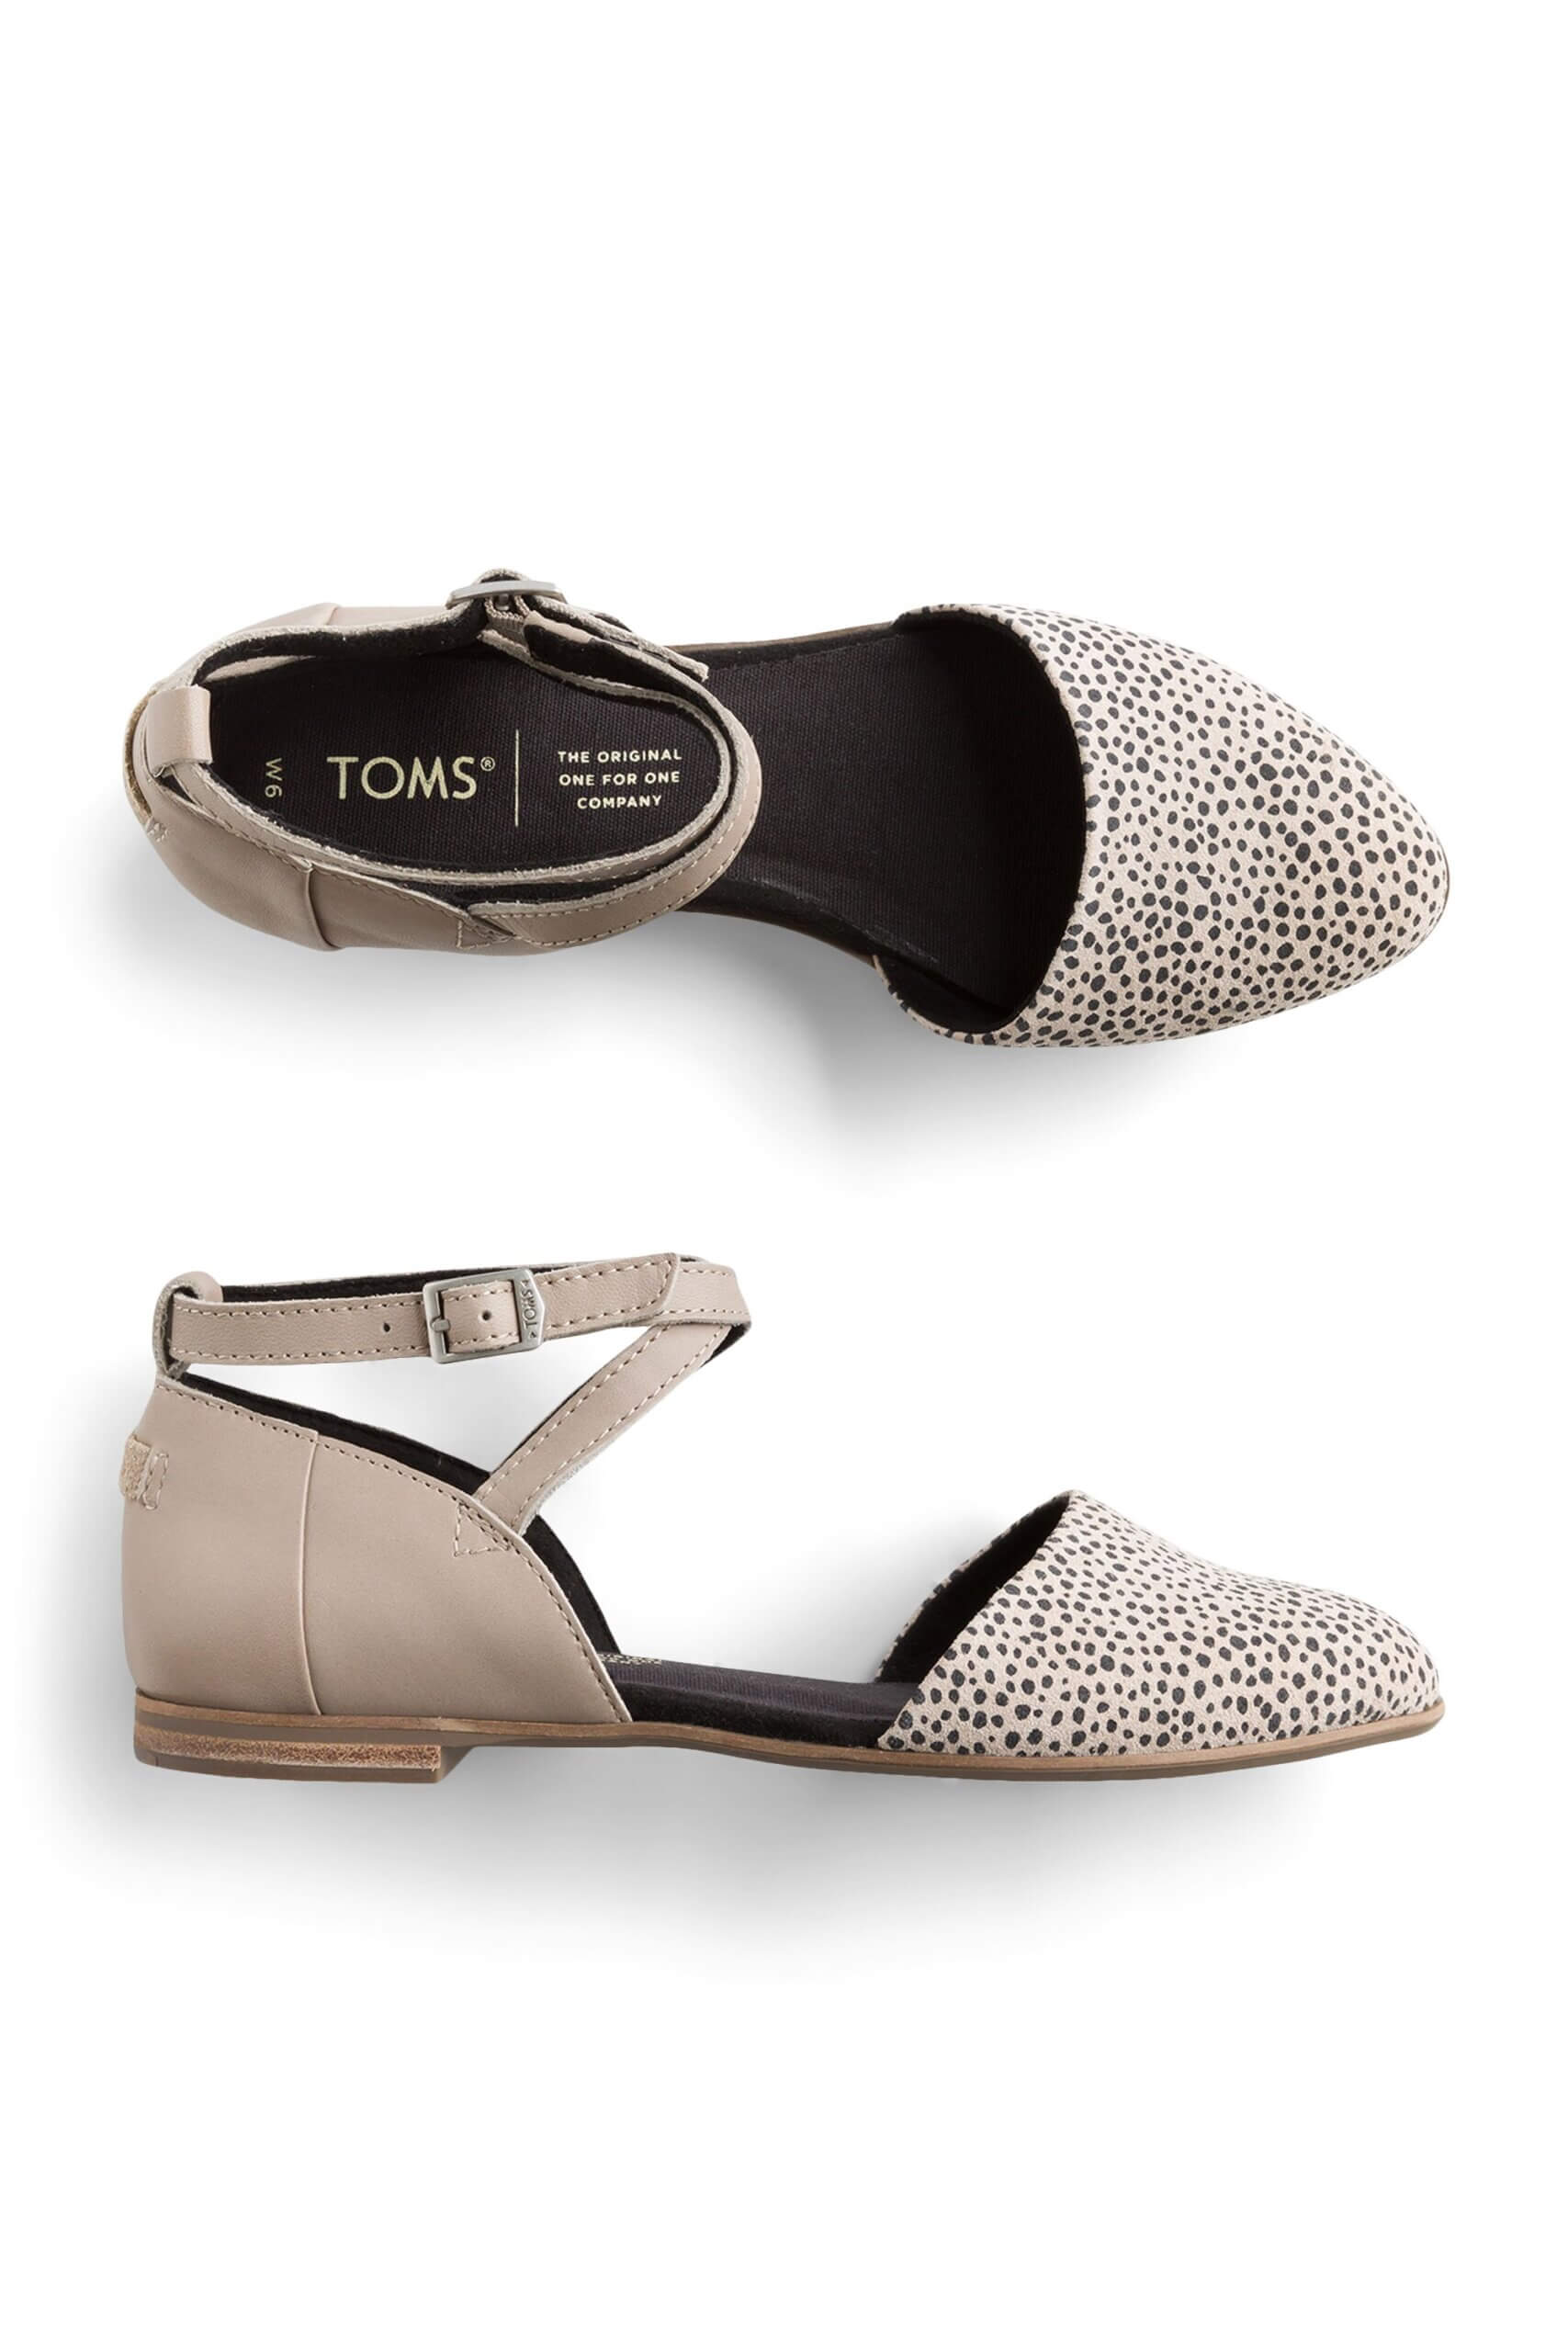 Stitch Fix Women's taupe ankle-strap flats with black spots.